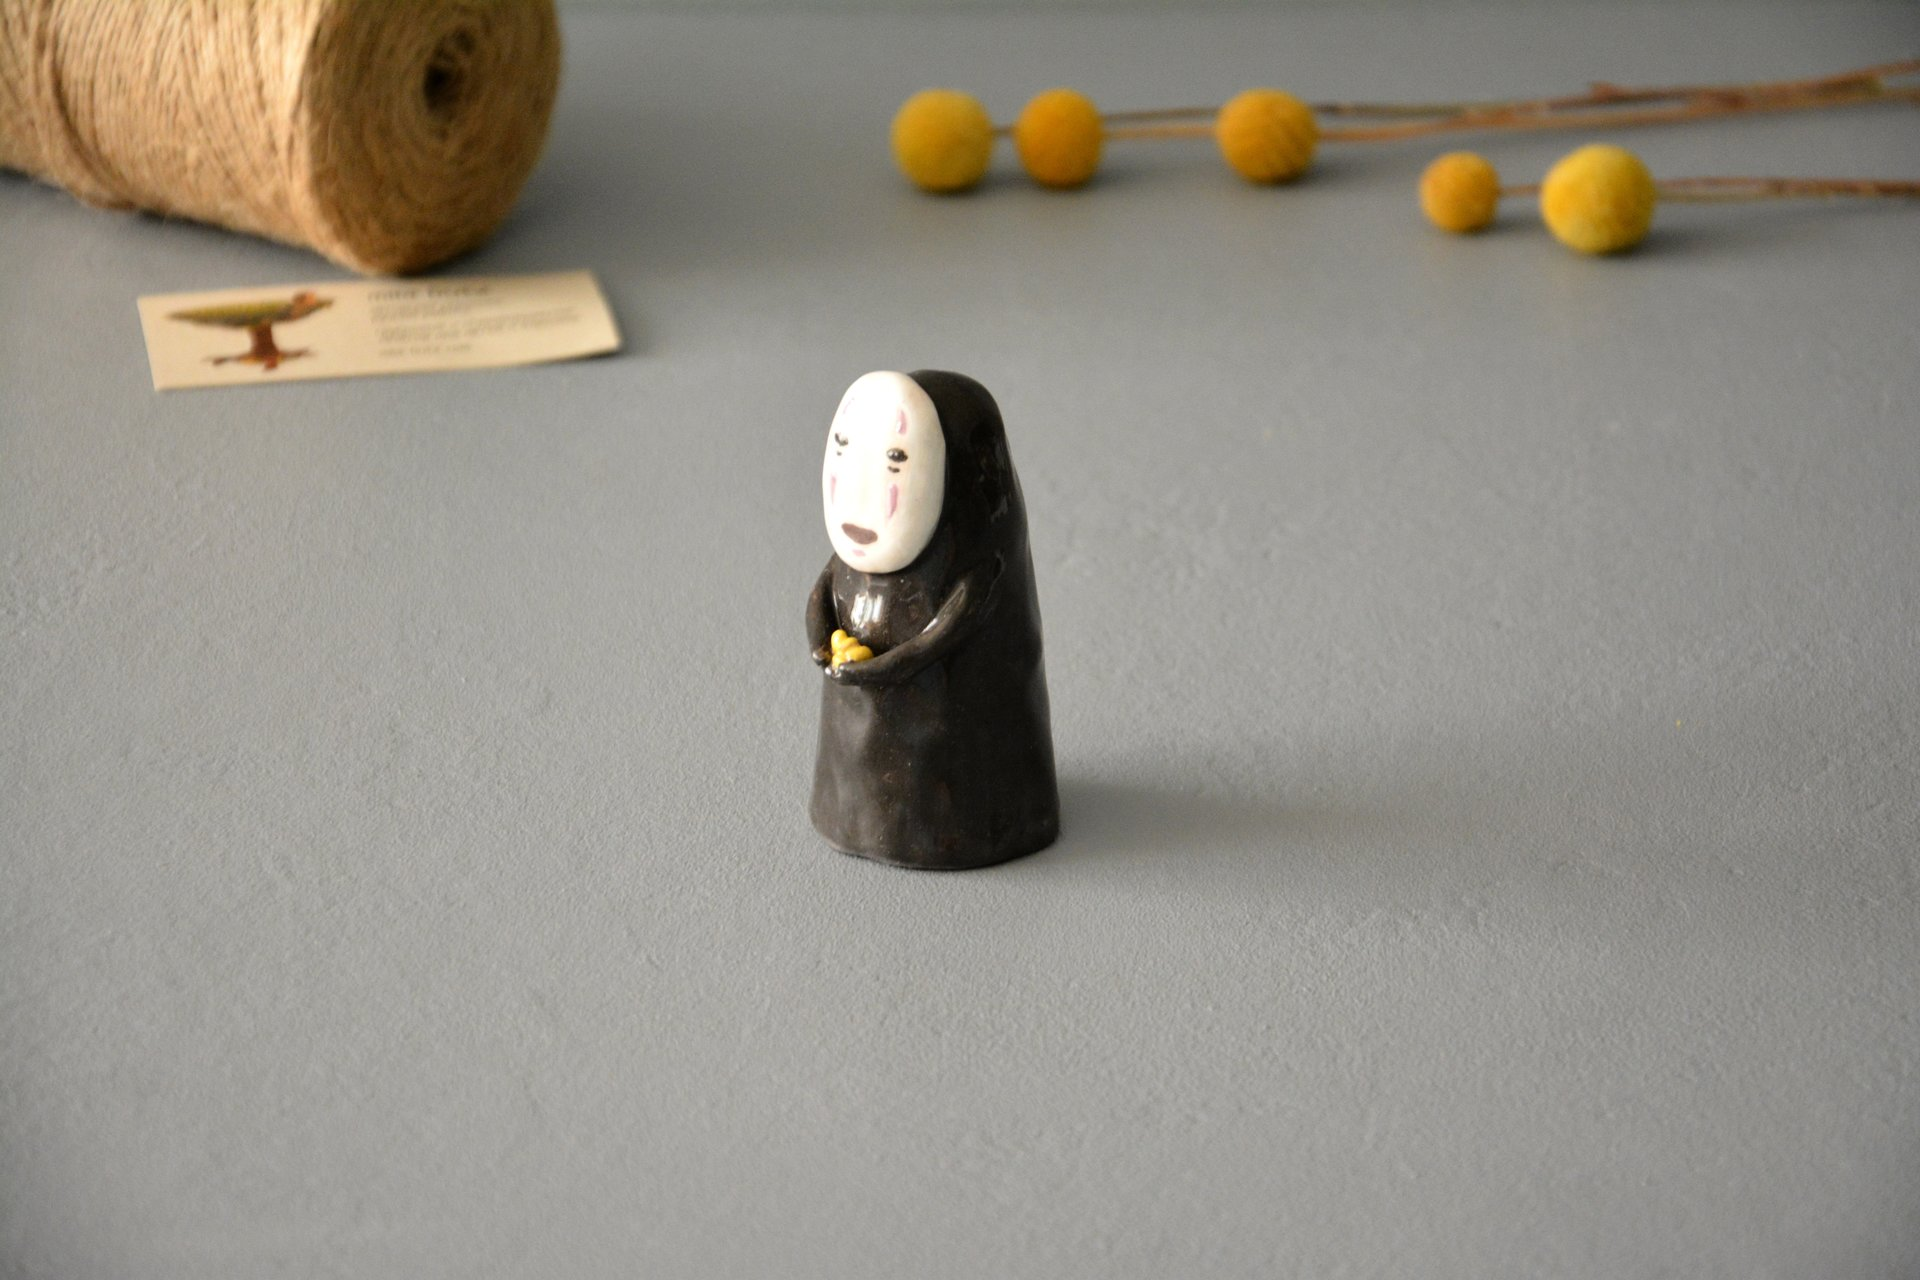 No-Face Kaonashi figurine, height - 8,5 cm, photo 4 of 5.